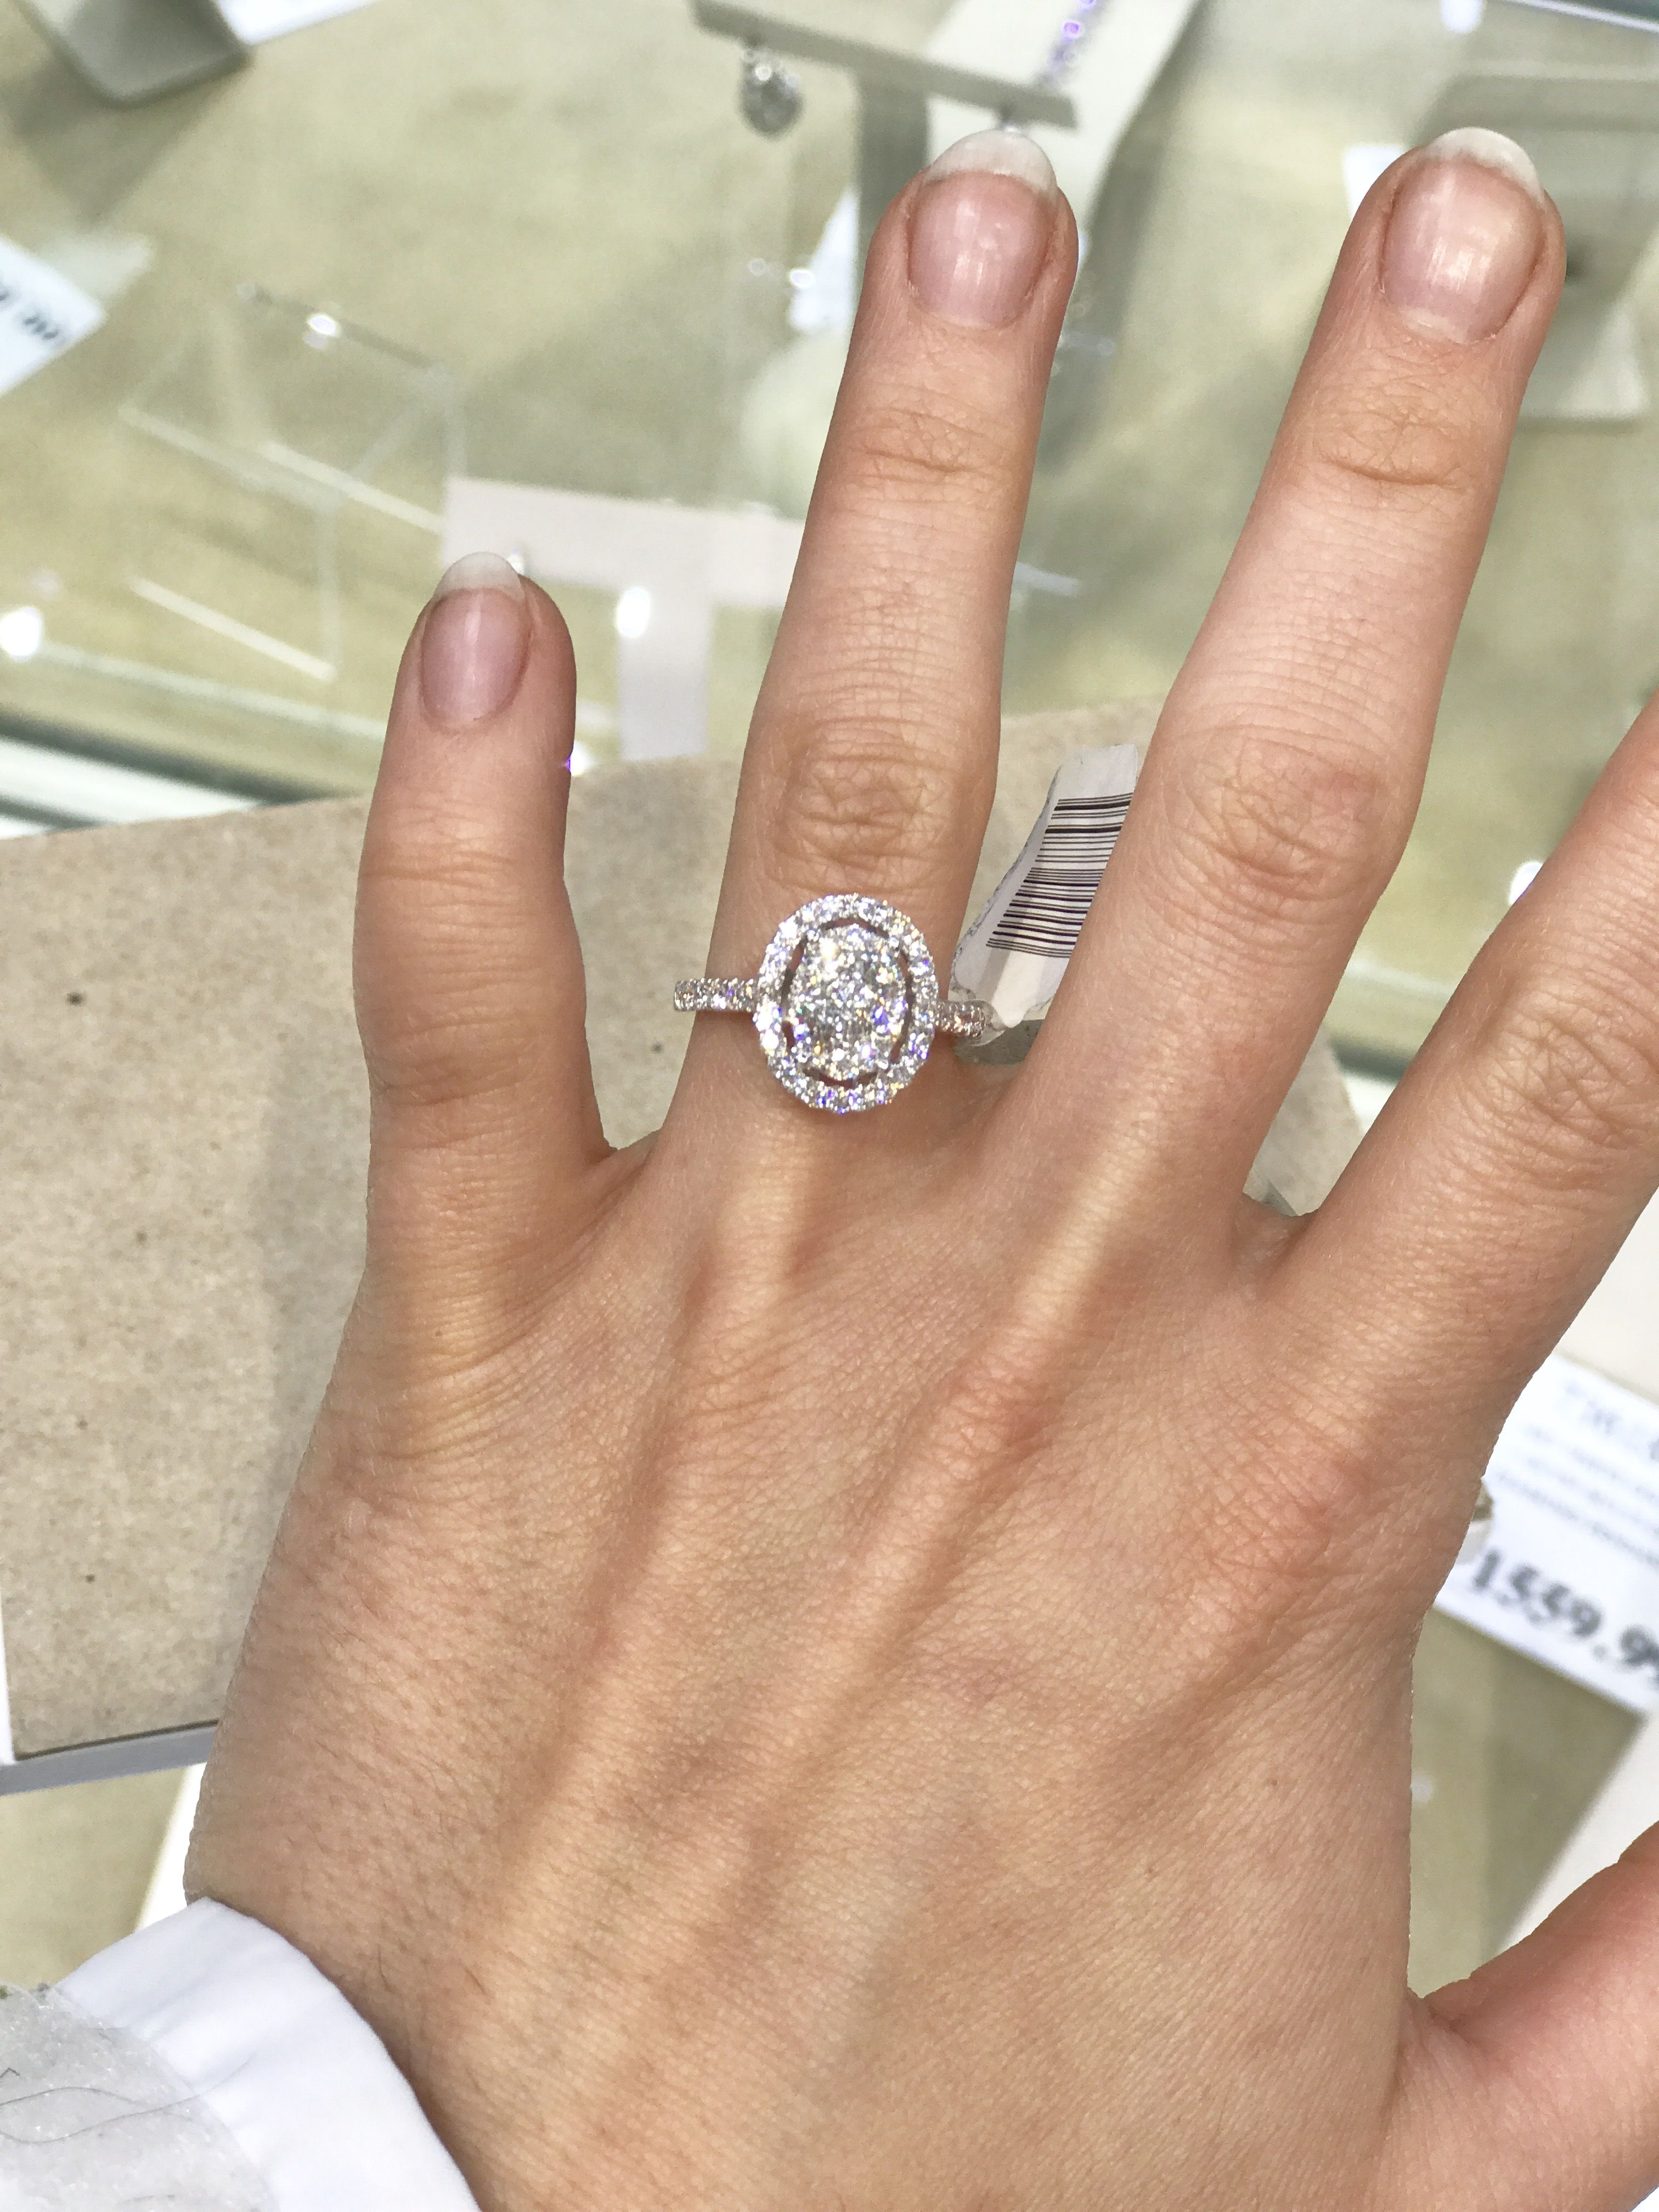 weddings dream ring from freaking costco too - Costco Wedding Ring